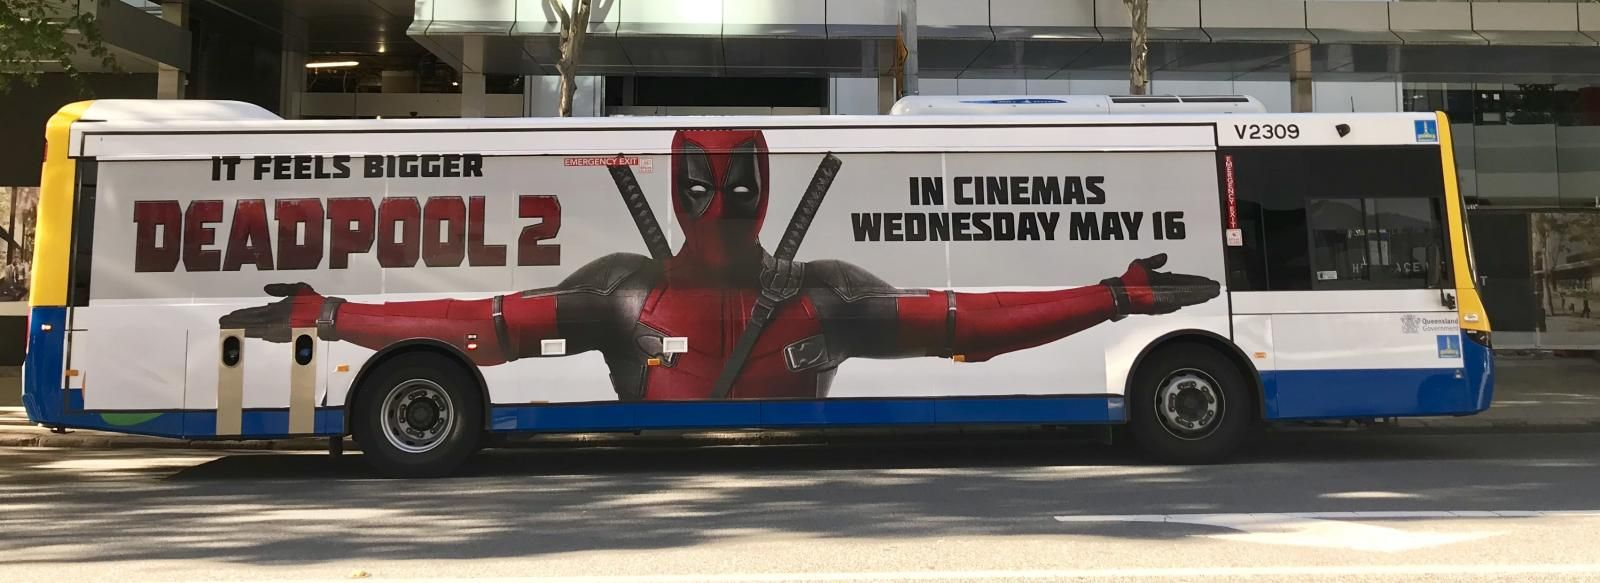 a-coach-with-deadpool-poster-on